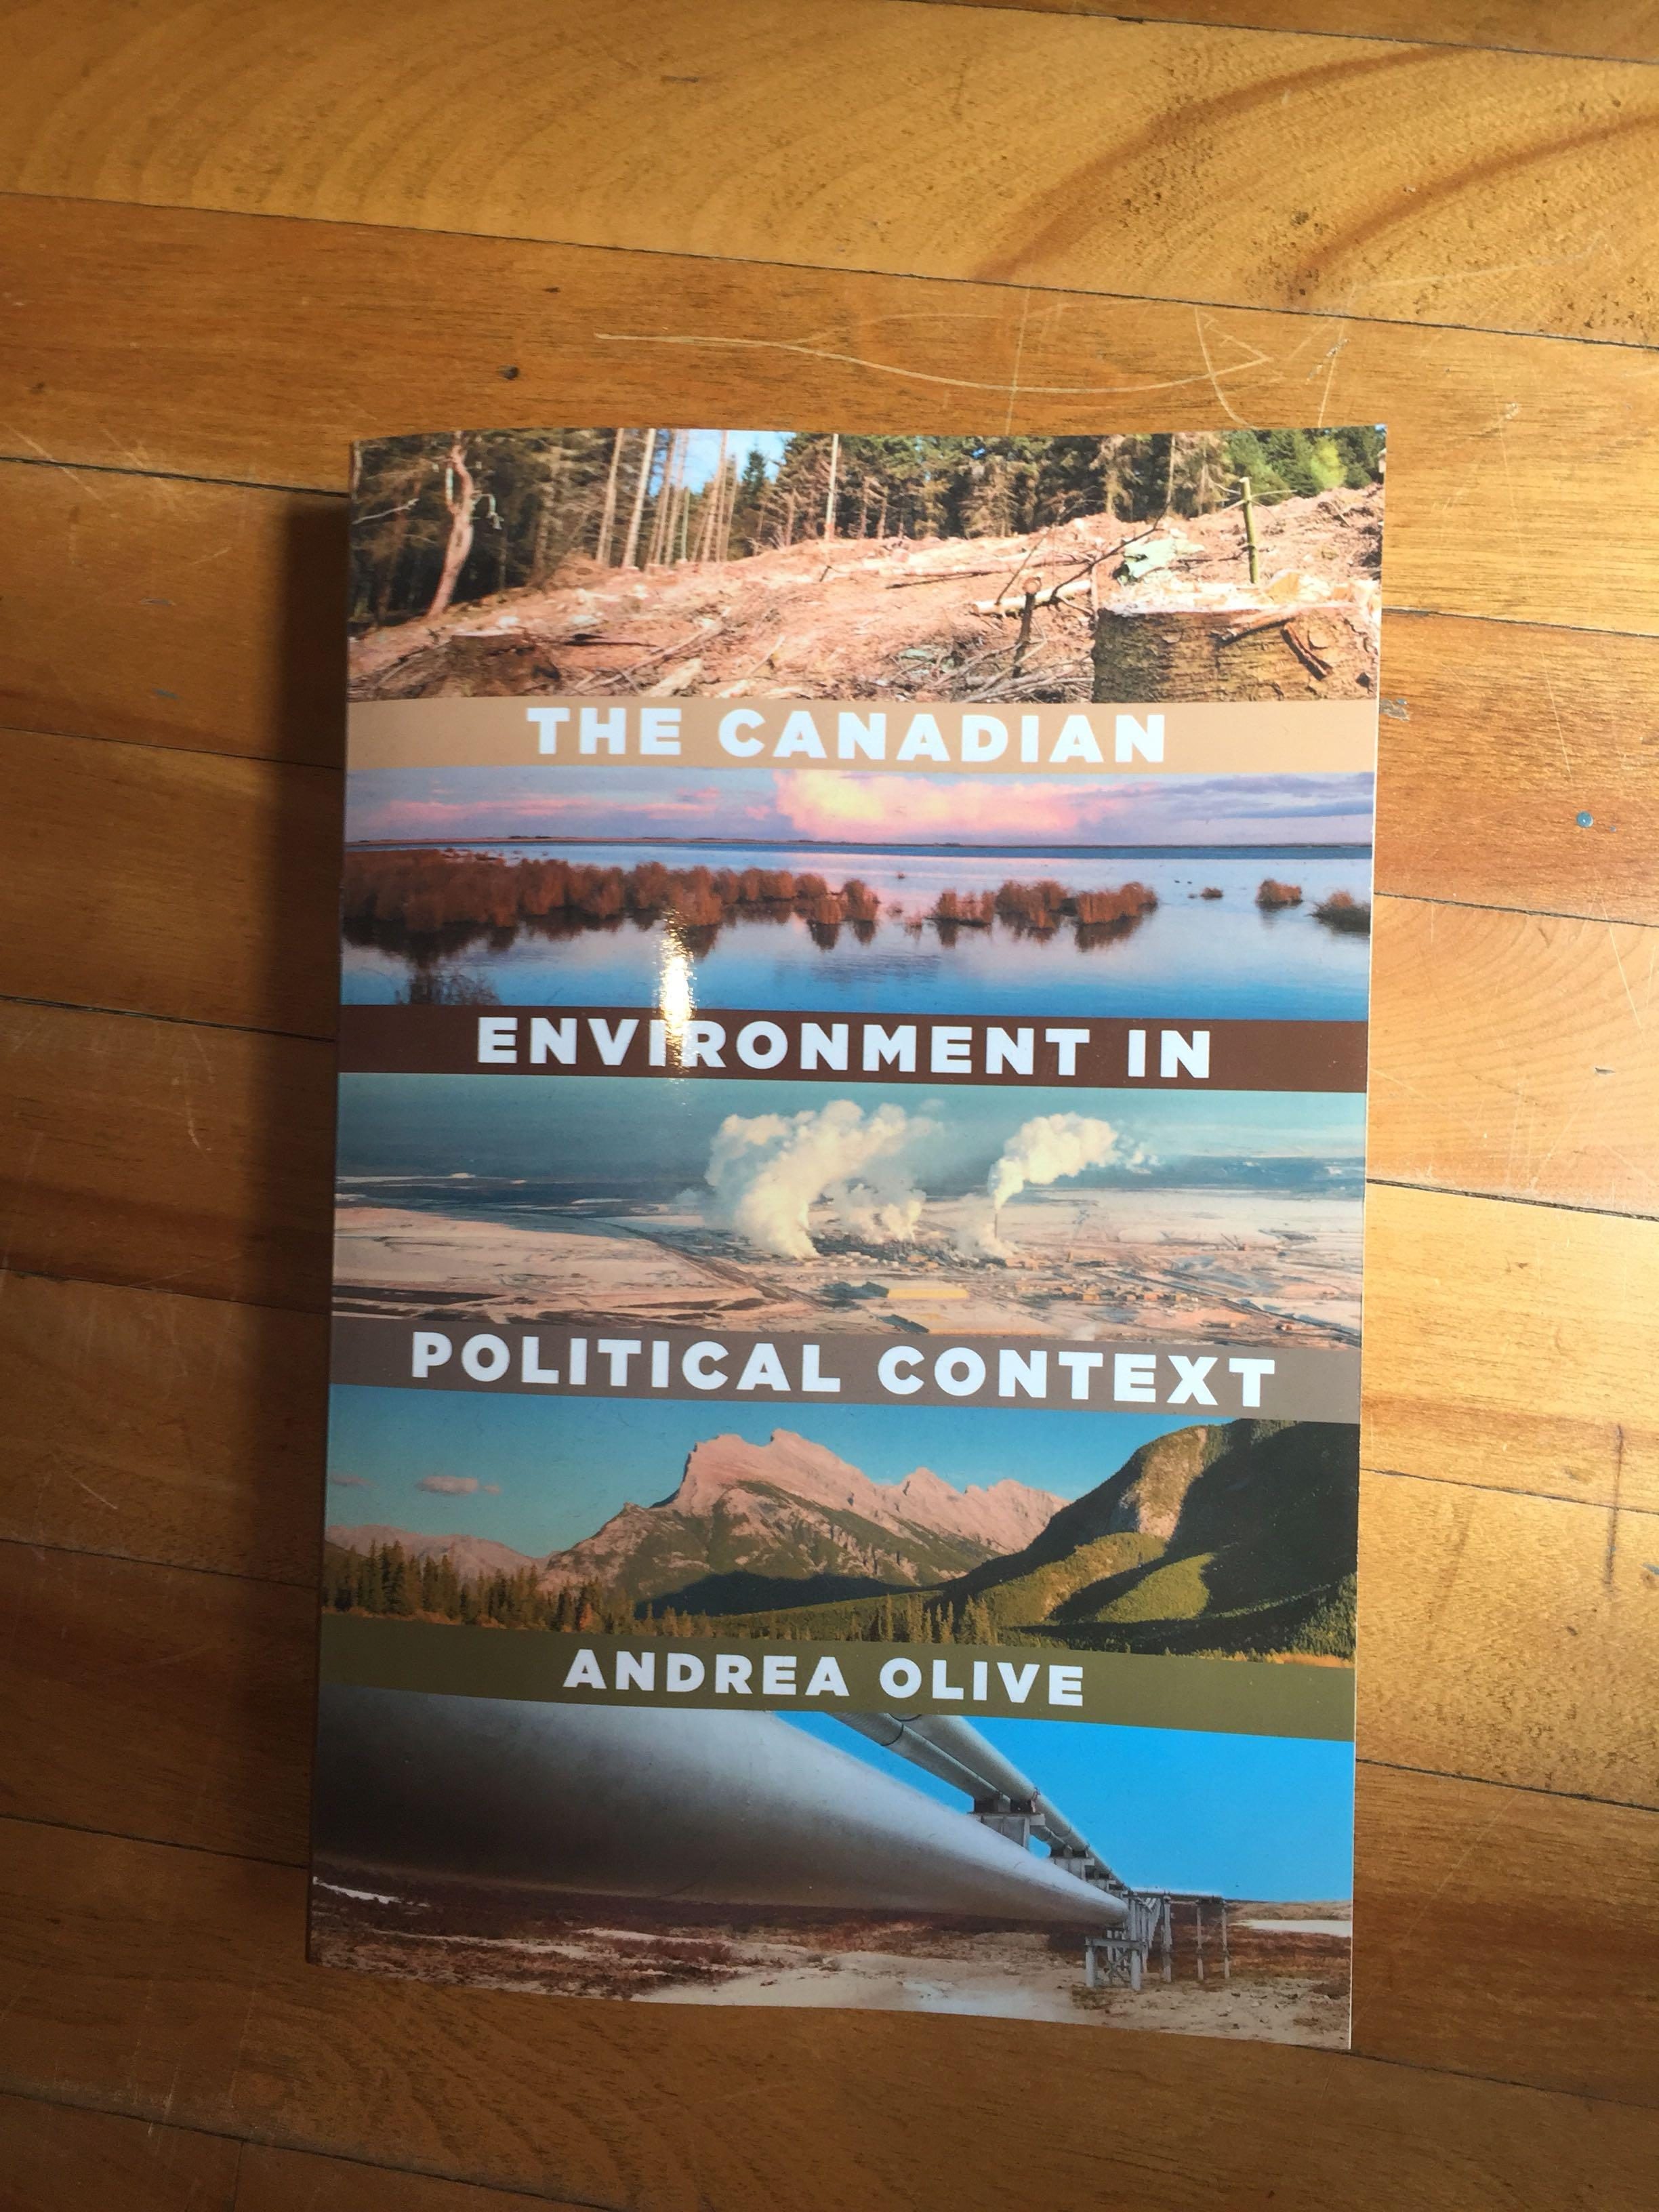 The Canadian environment in political context Andrea Olive